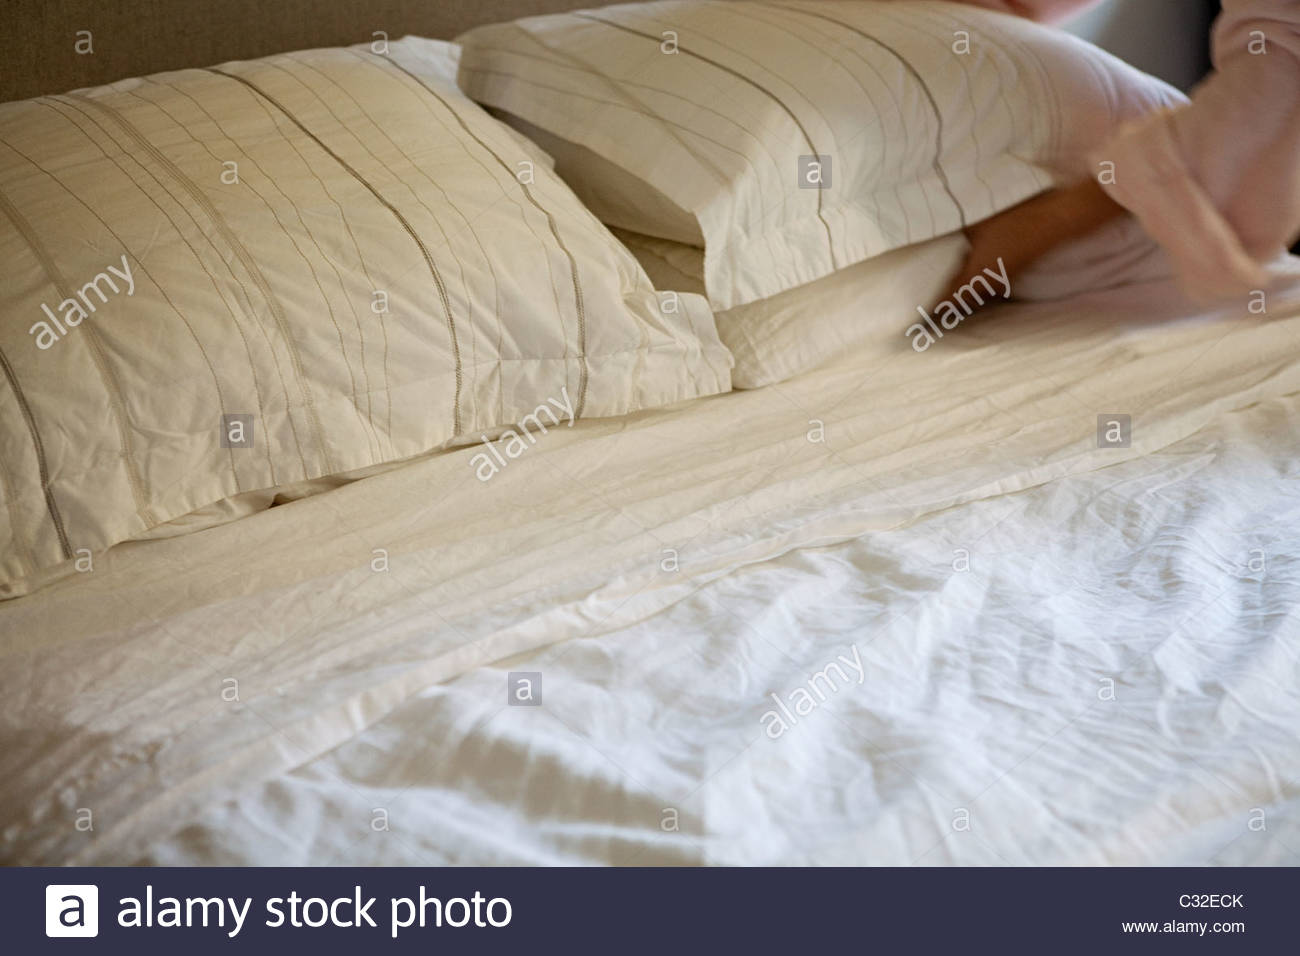 Woman making bed - Stock Image